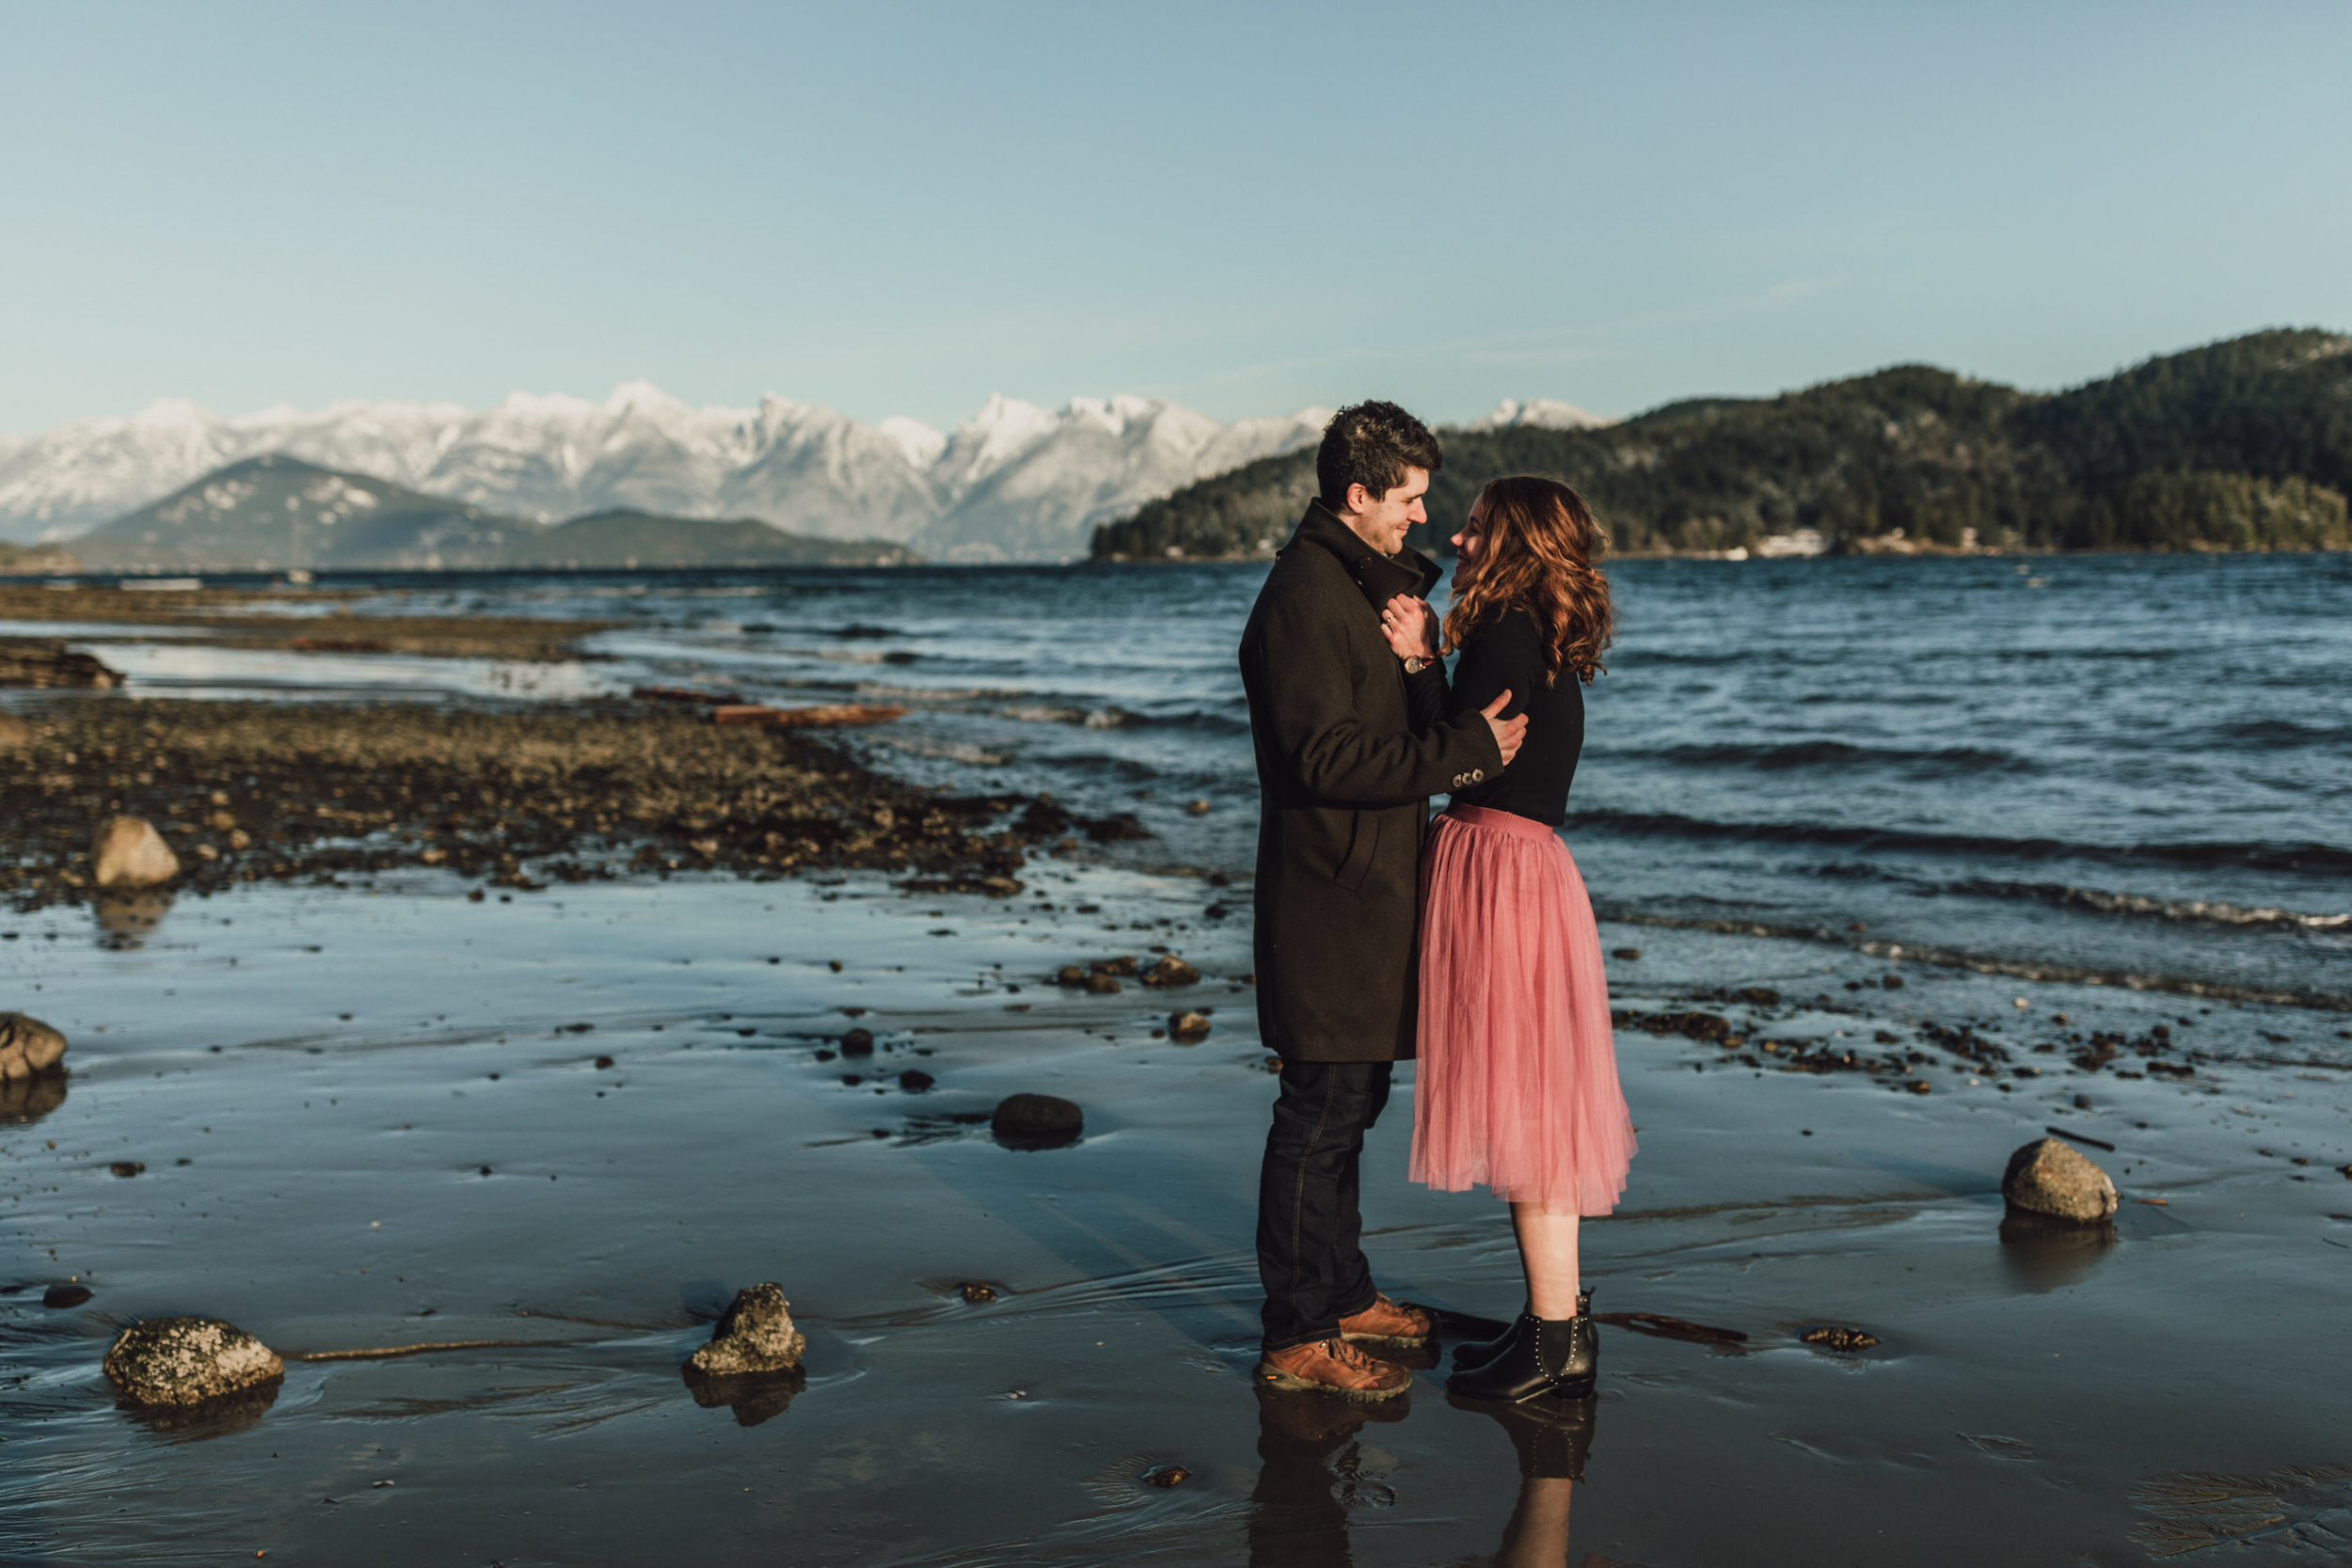 Snowy Engagement Photos - Gibsons Engagement Photos - Sunshine Coast Engagement Photos - Vancouver Wedding Photographer and Videographer - Jennifer Picard Photography091.JPG